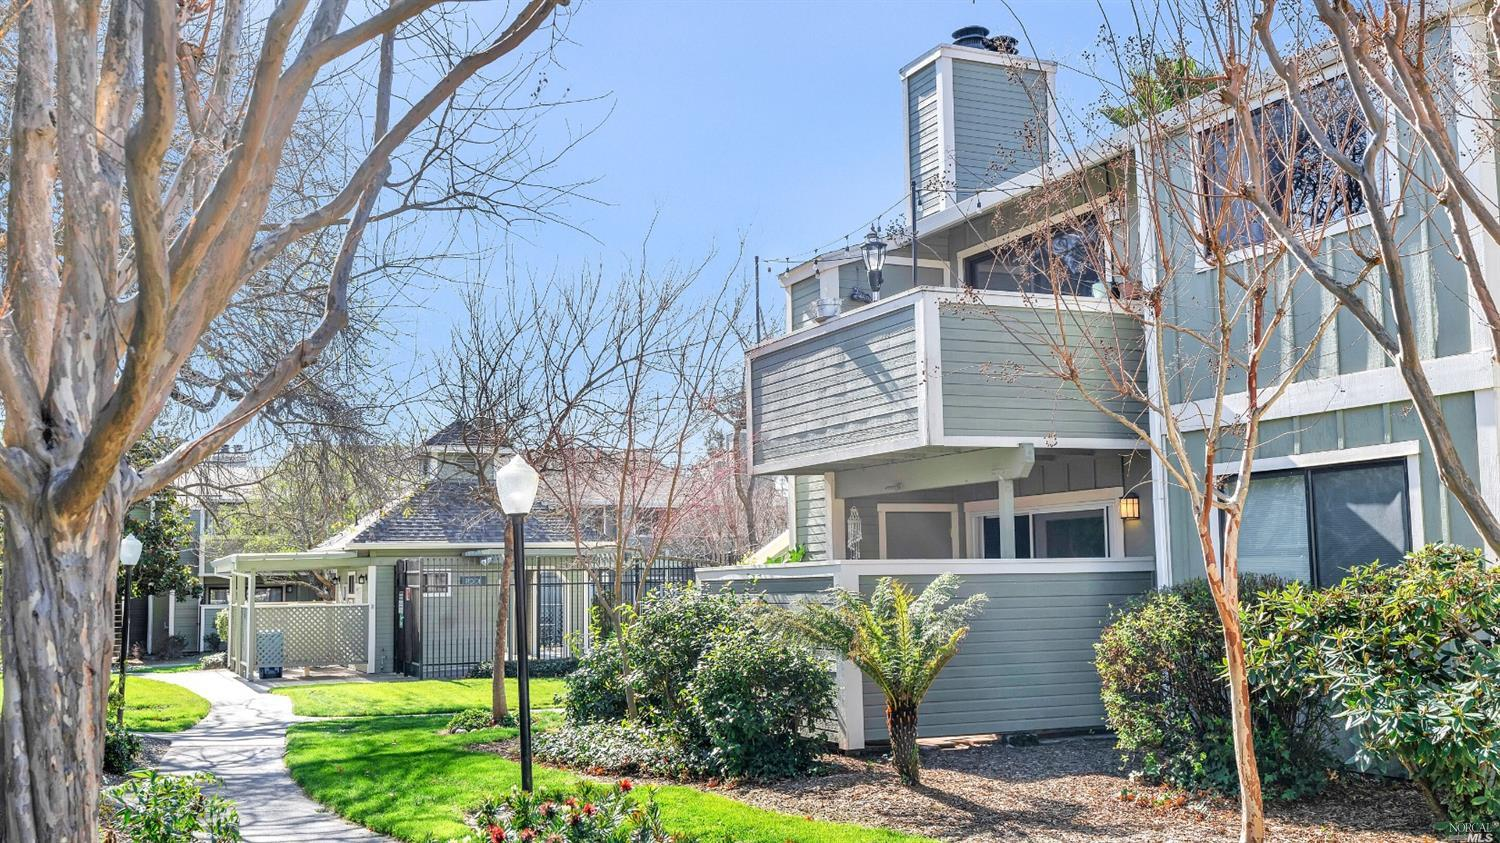 Thoughtfully updated with granite counters, wood floors, barn doors, and multiple shower heads in the 2 full bathrooms! One of the best locations in the community close to parking and to the pool. This one is gorgeous!